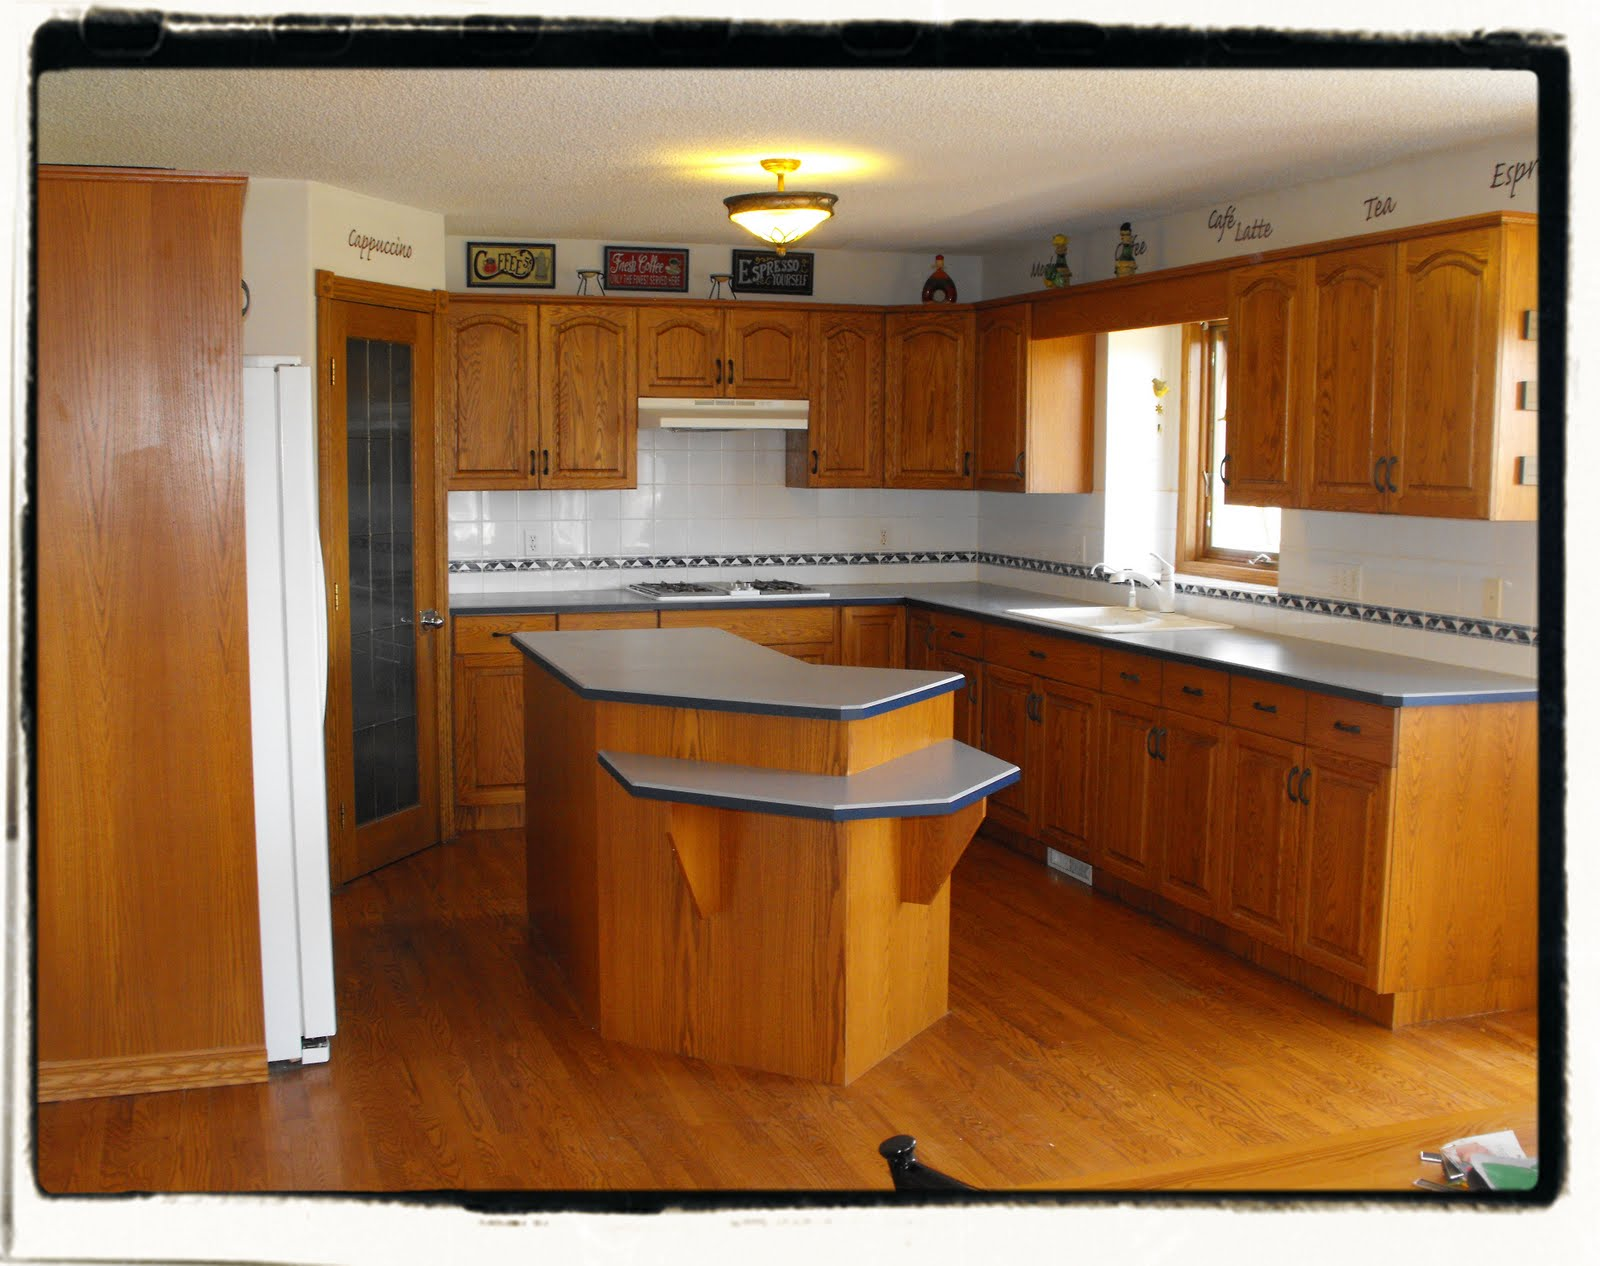 Ok, so I have this kitchen.